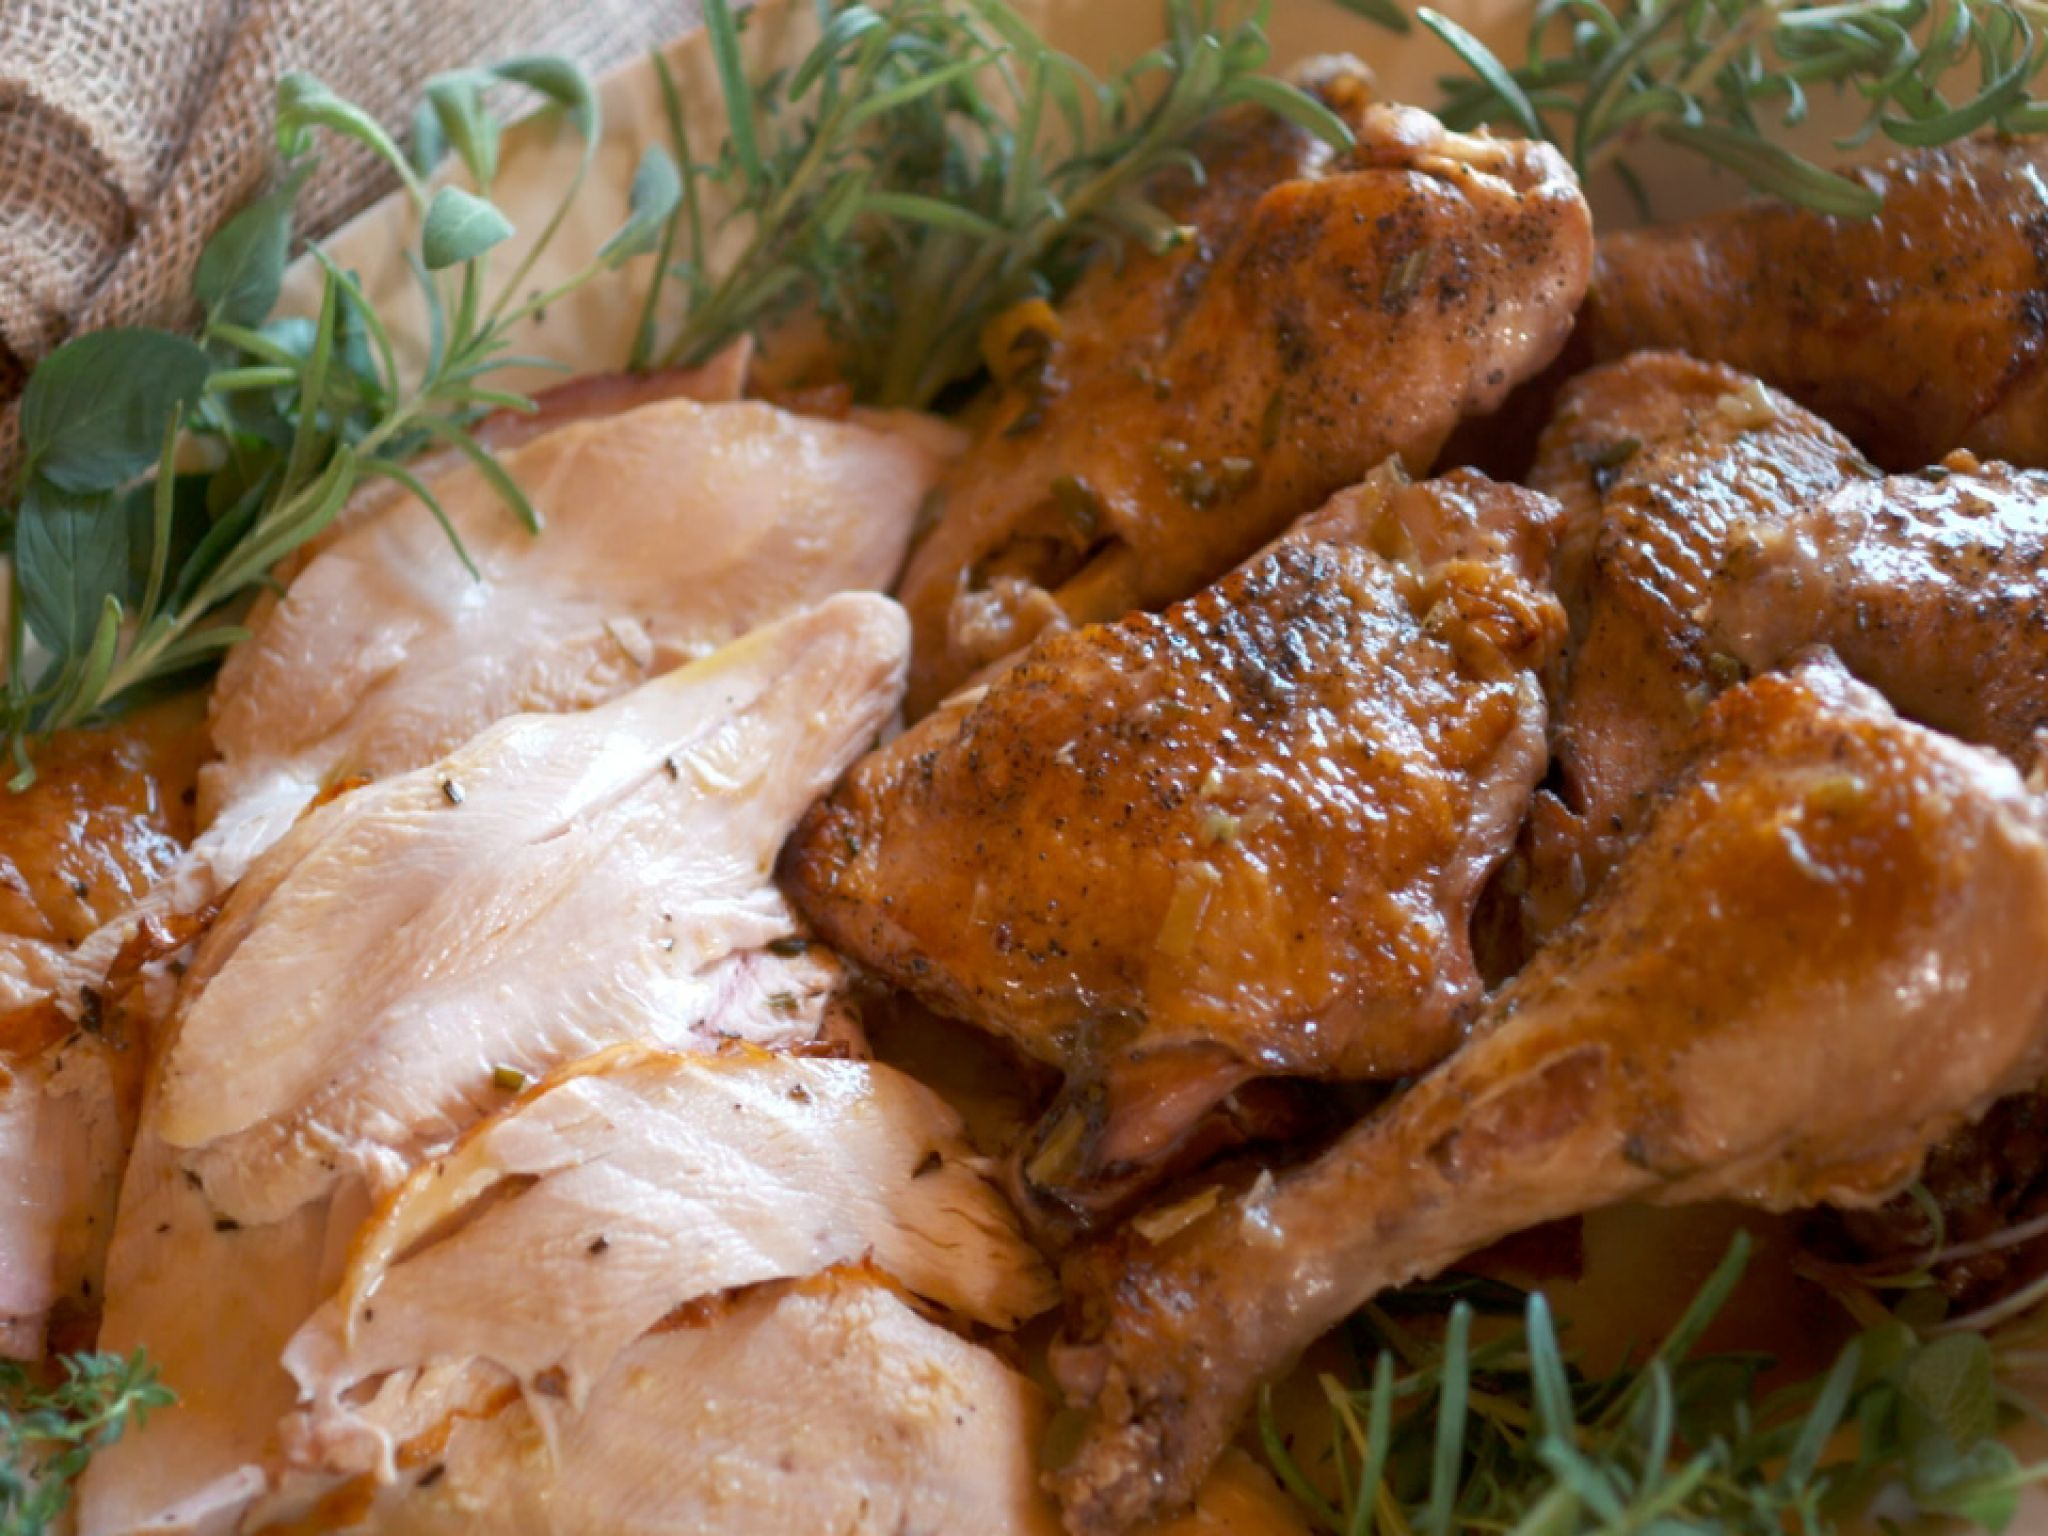 Roasted and Braised Turkey with Cognac Gravy #farmhouserulesrecipes